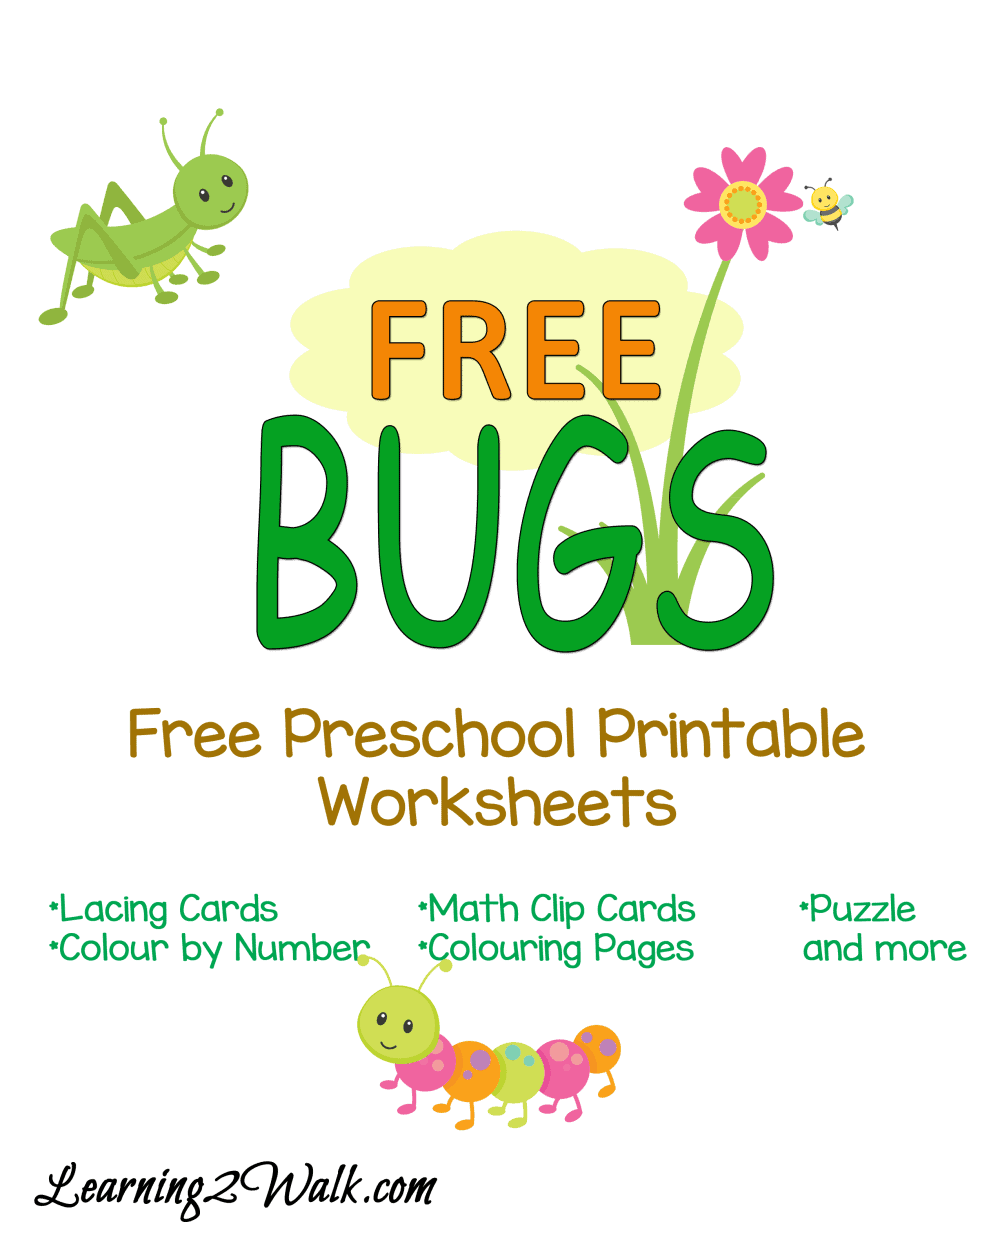 Bugs Free Preschool Printable Worksheets